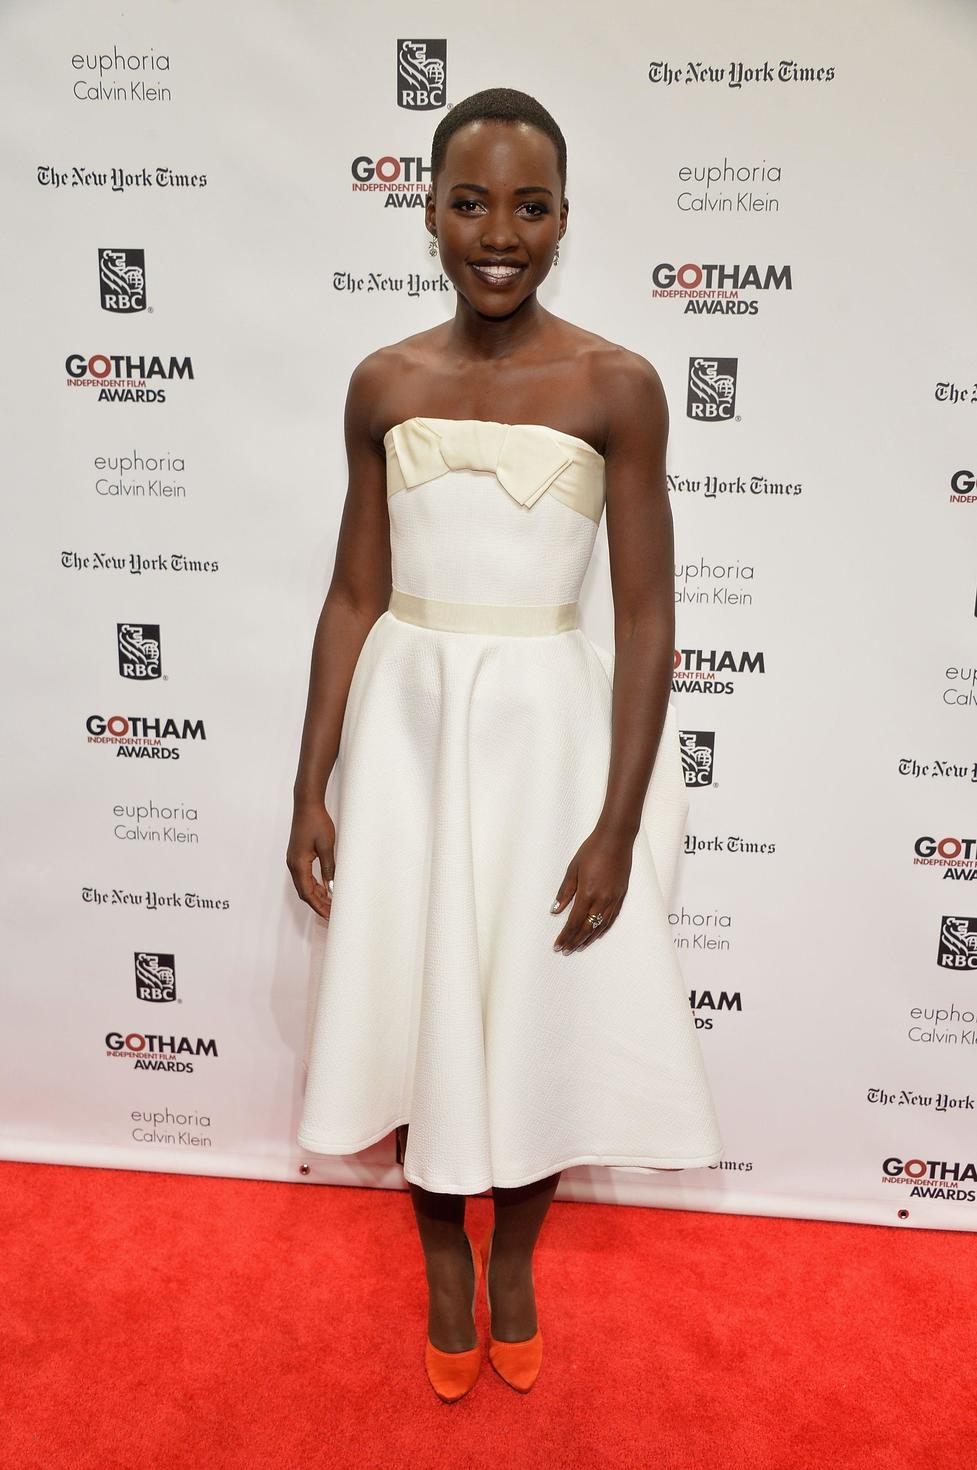 She's now grown her hair out, but when Oscar winner Lupita Nyong'o rose to fame in 2013, it was with this shorter look